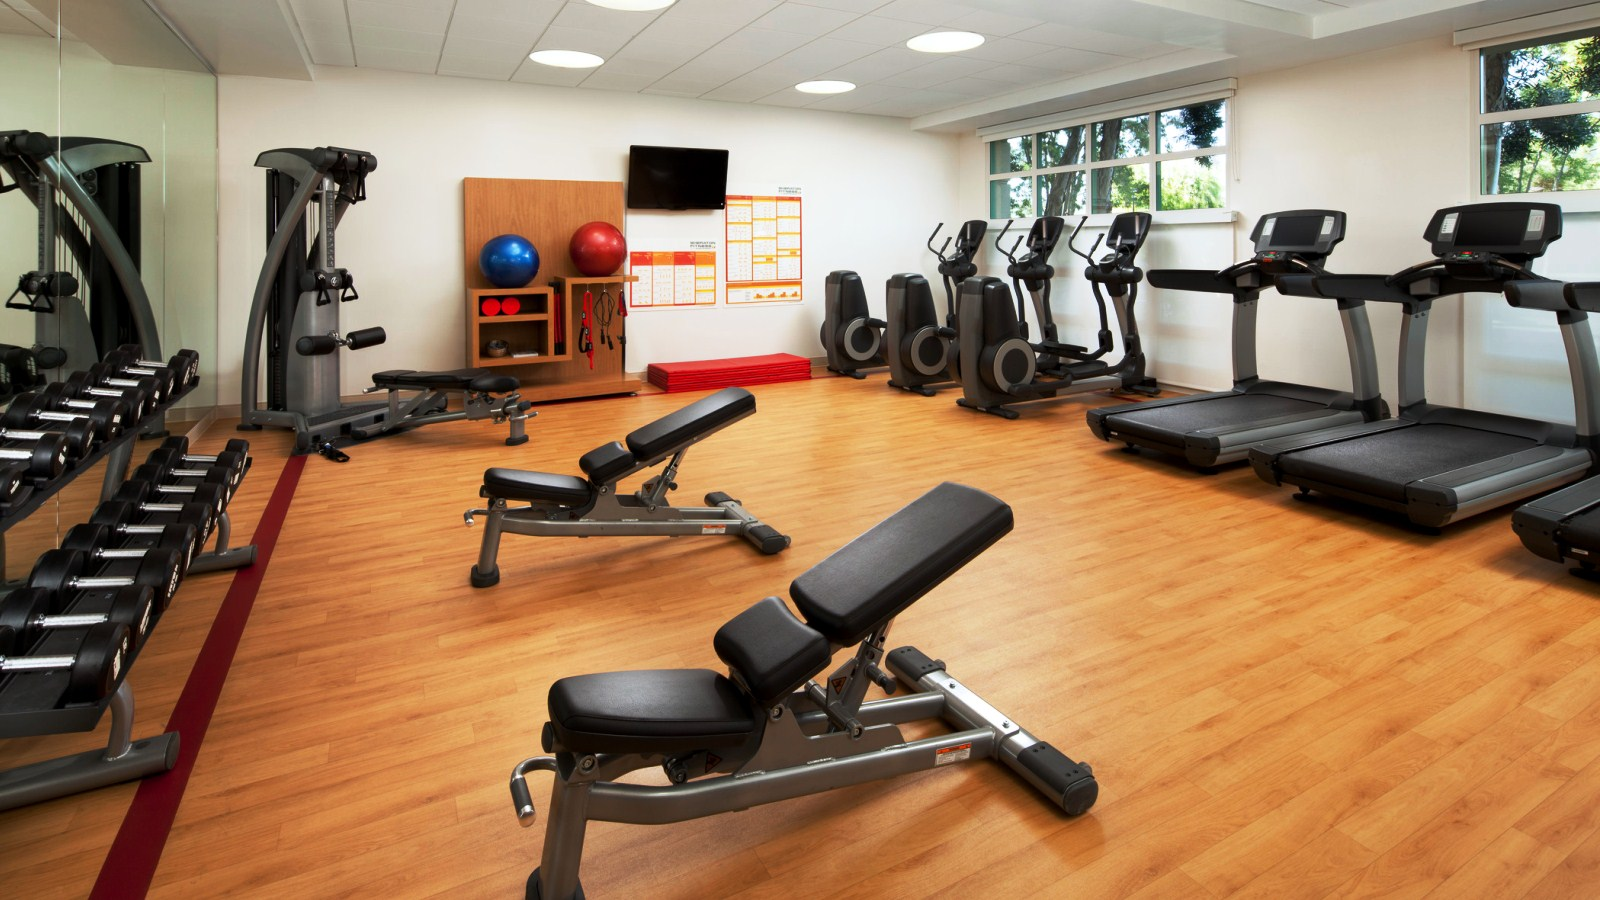 Features and Amenities - Fitness Center